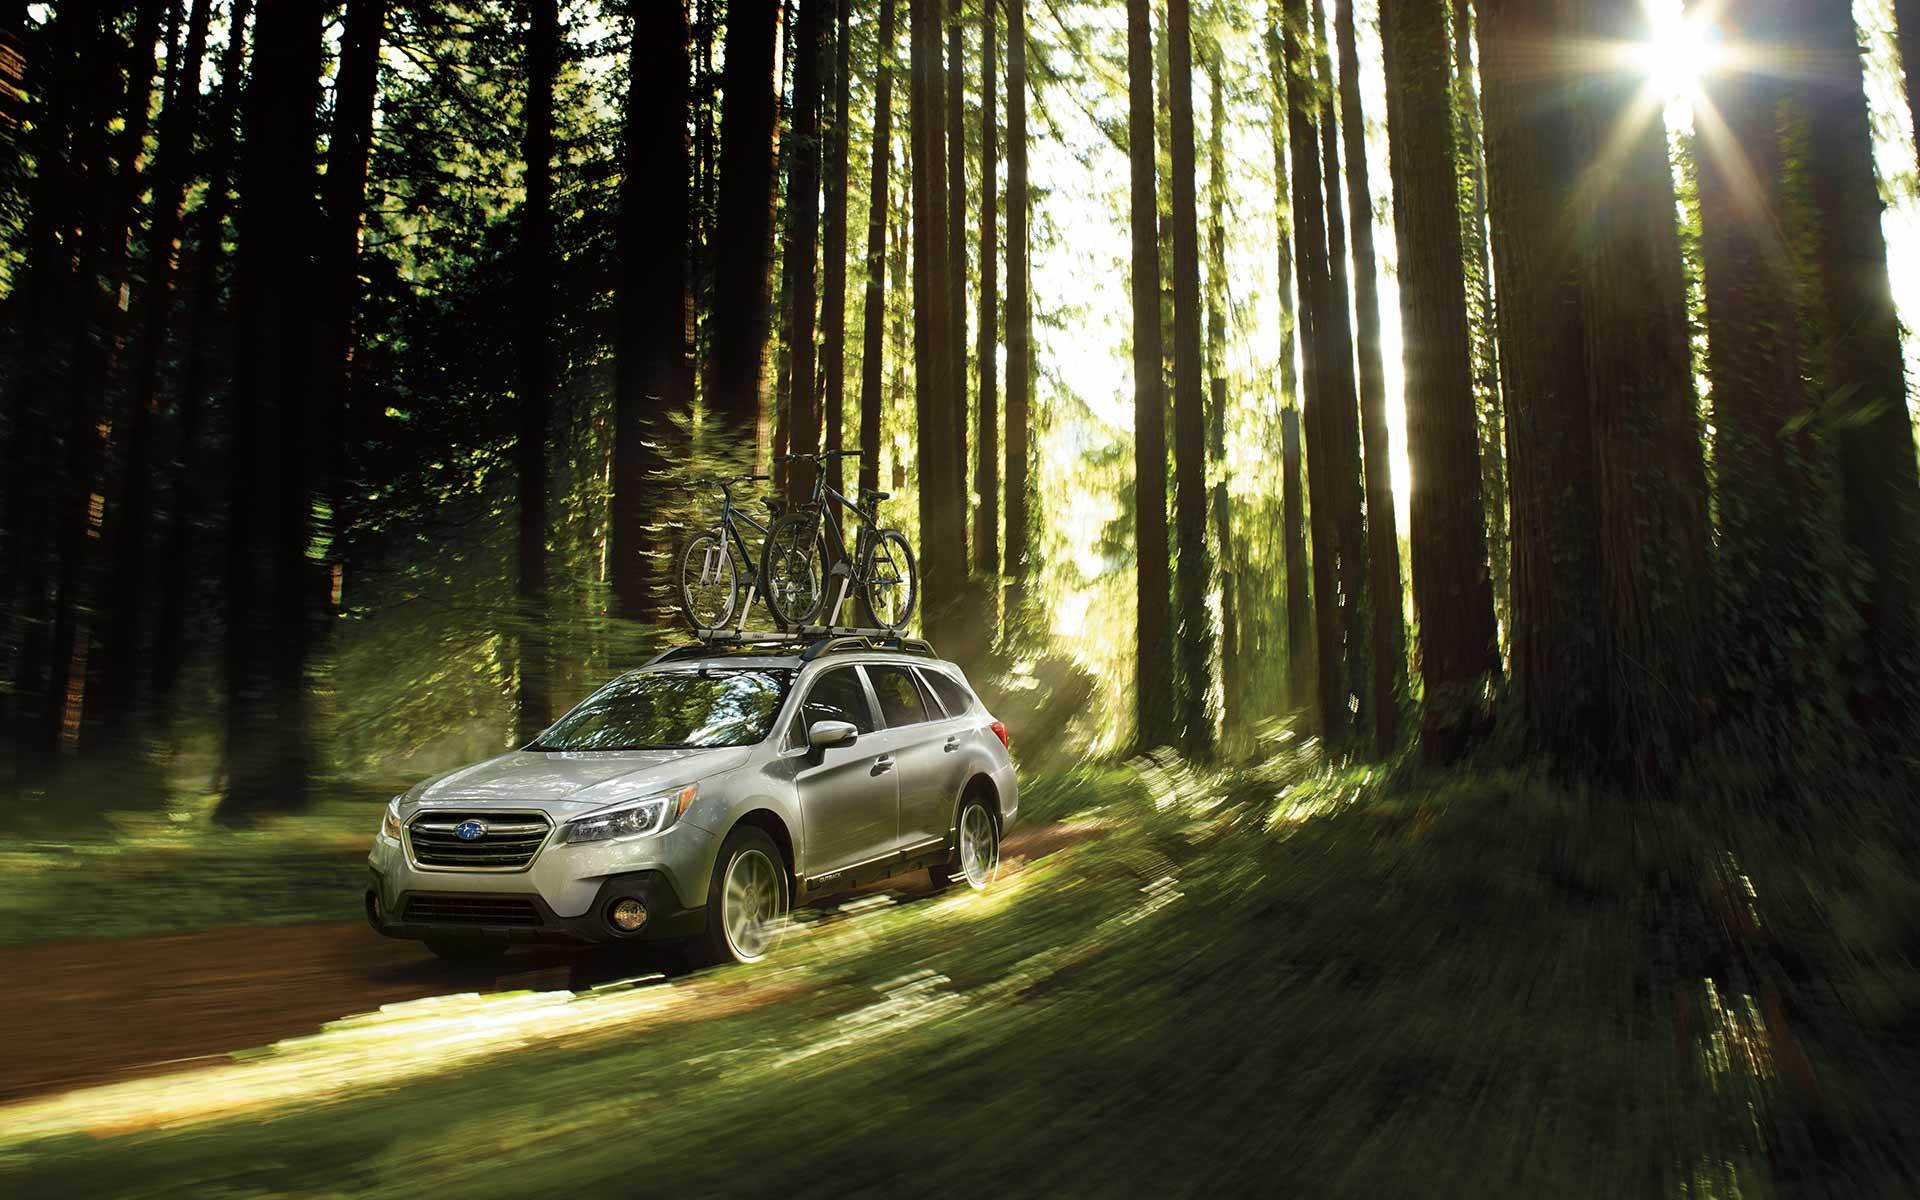 2019 subaru outback trees forest offroad